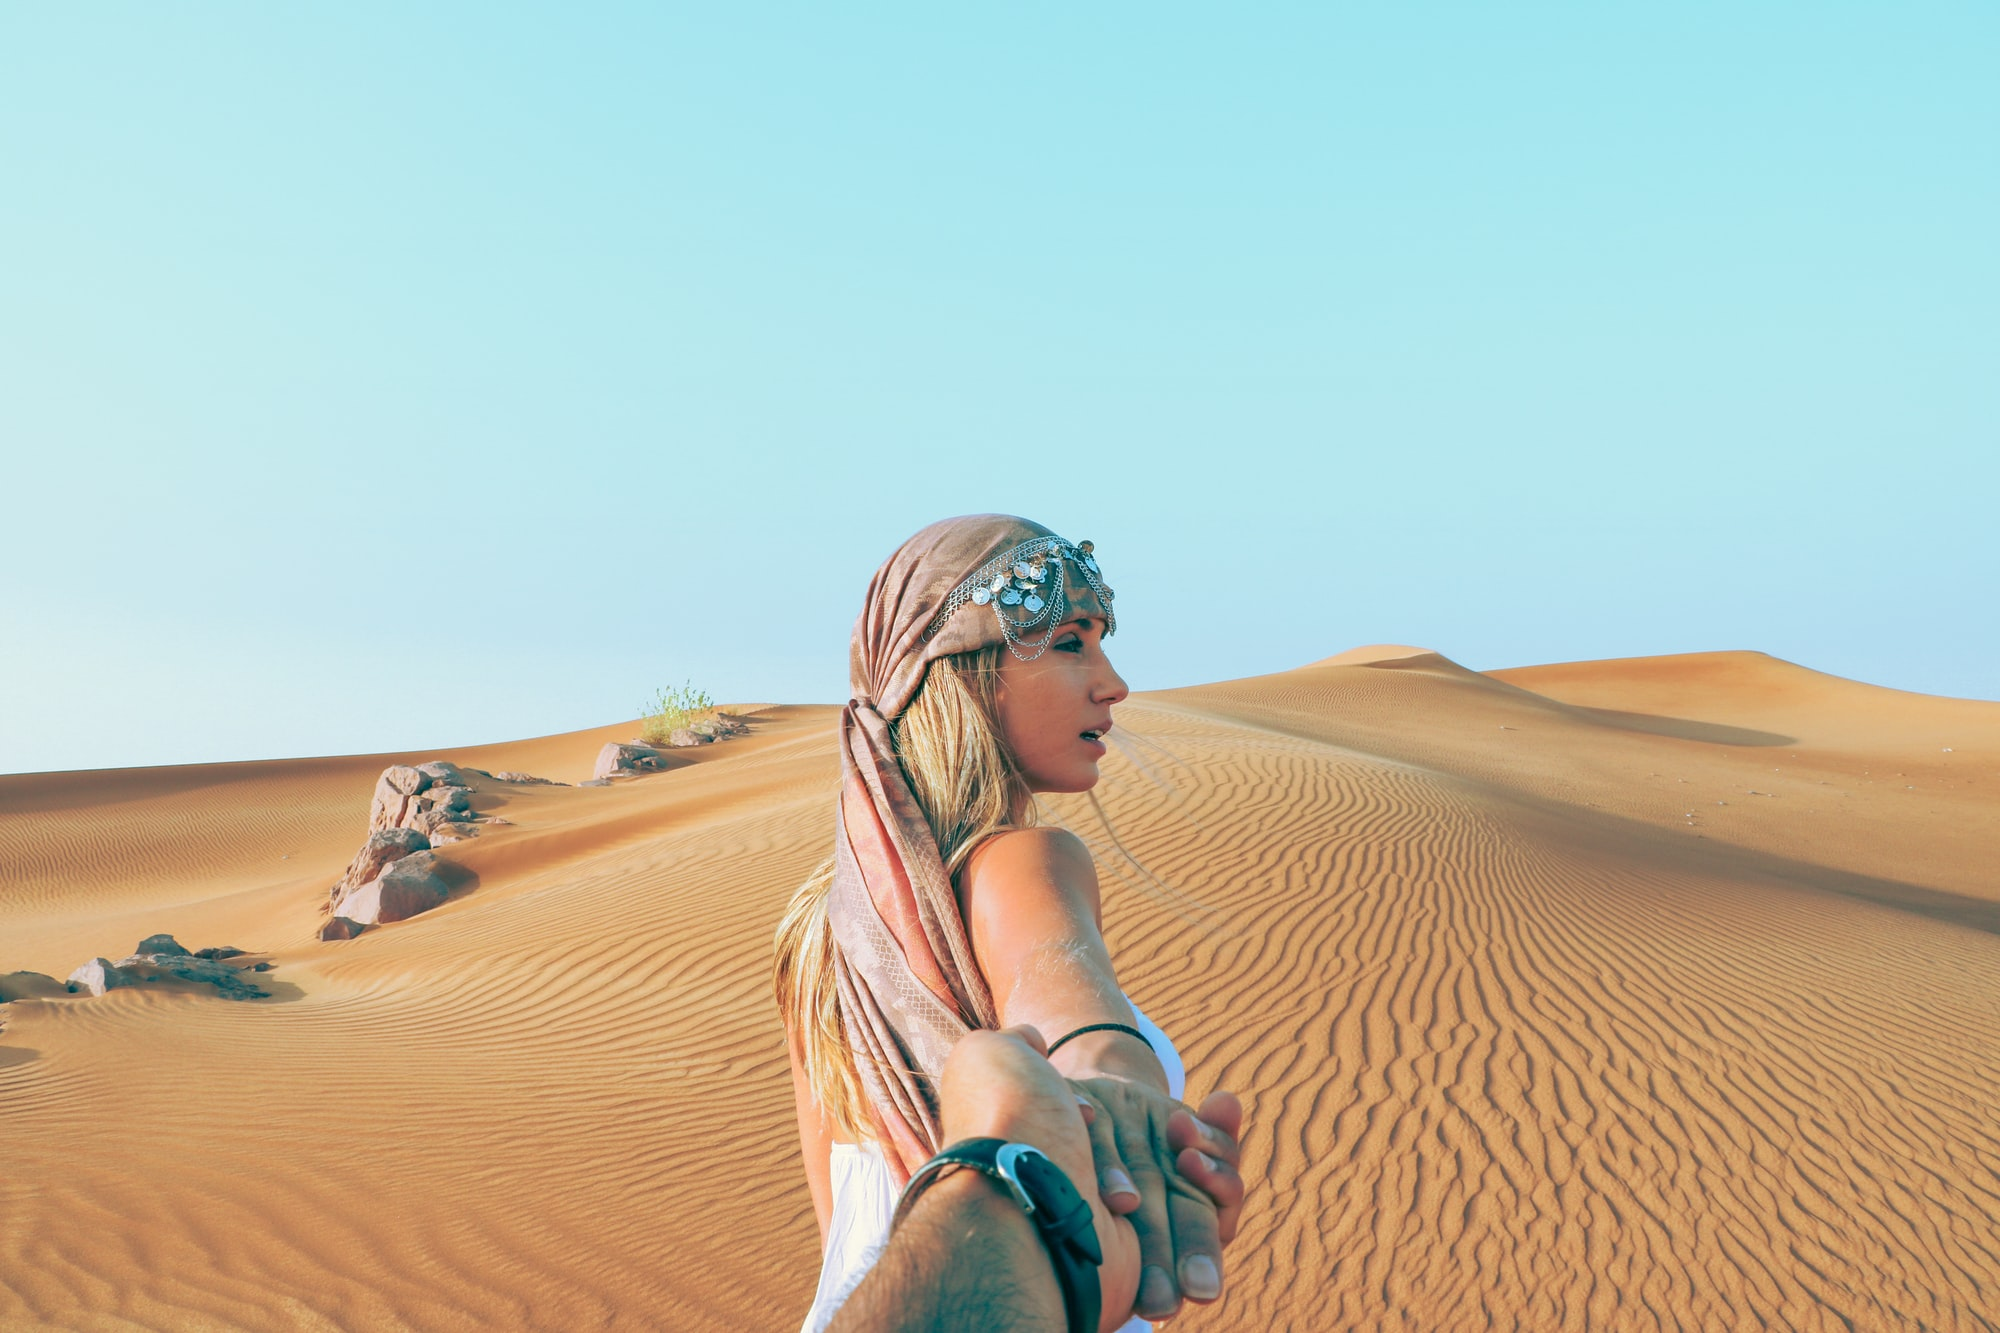 We were on our way to ride camels on the desert as I pulled my friend to take my hand so I can lead the way. This picture is a collection of my minimalist travels around the world and it is meant to inspire more female travelers to go solo and enjoy the new people and adventures you meet along the journey.